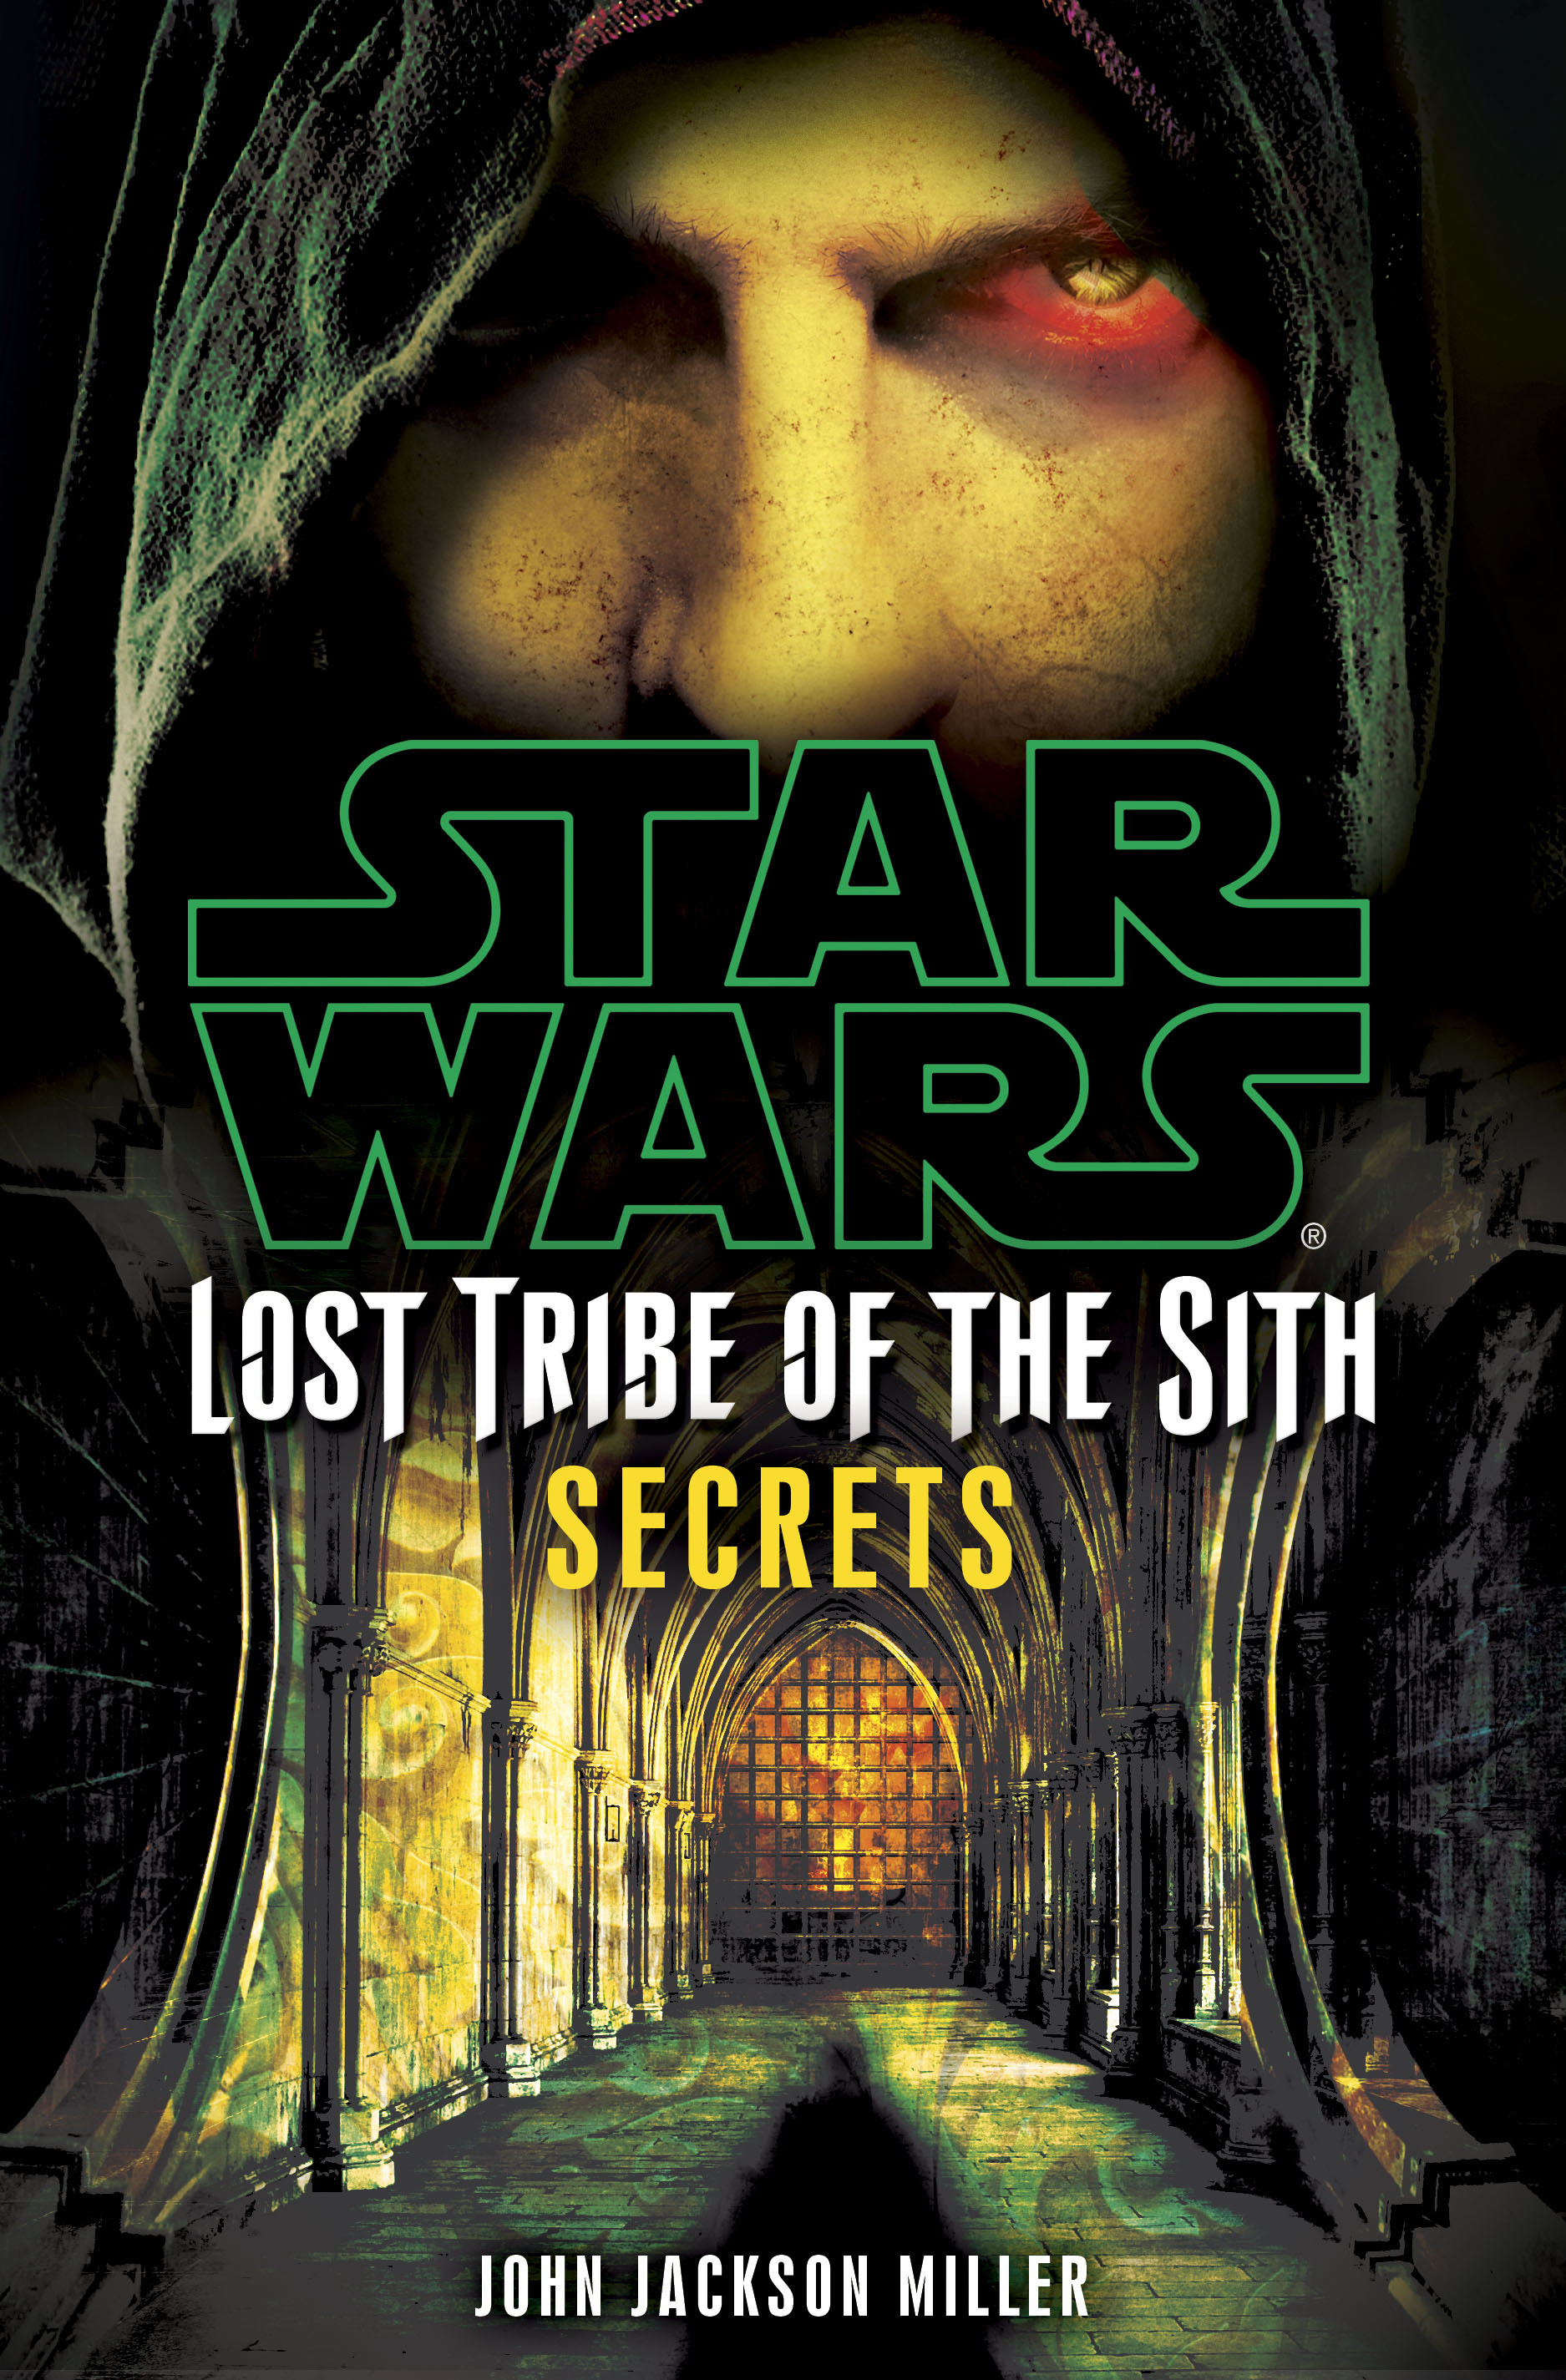 Lost Tribe of the Sith: Secrets